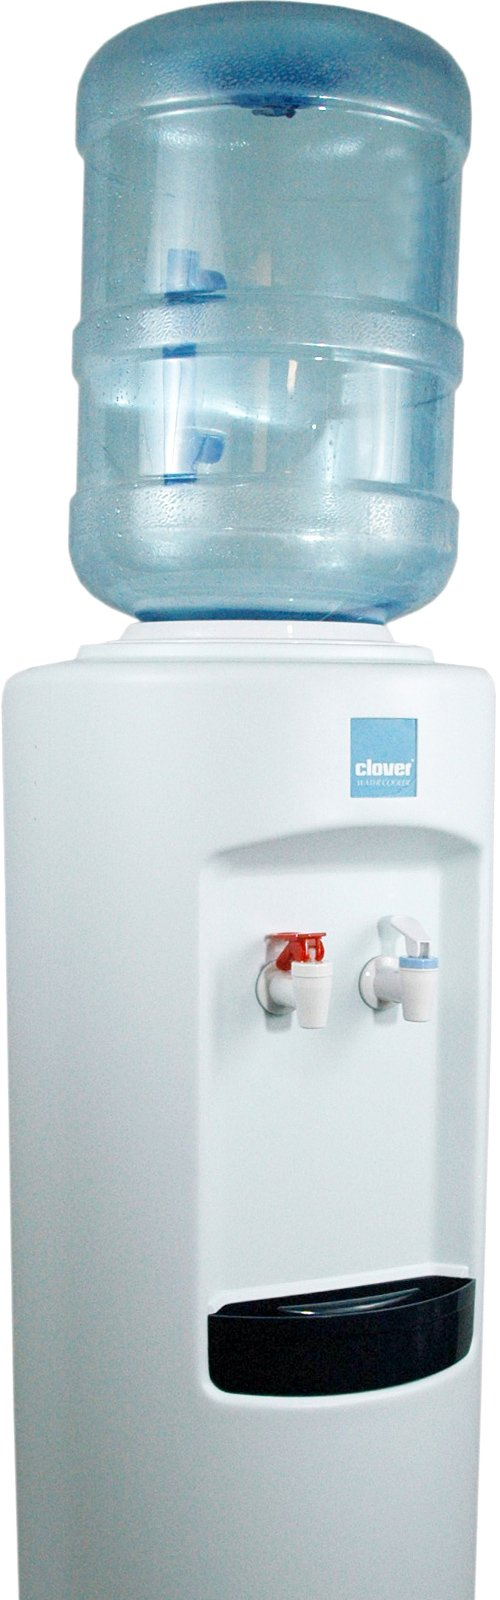 Clover B7A Hot and Cold Bottled Water Dispenser White - Top View